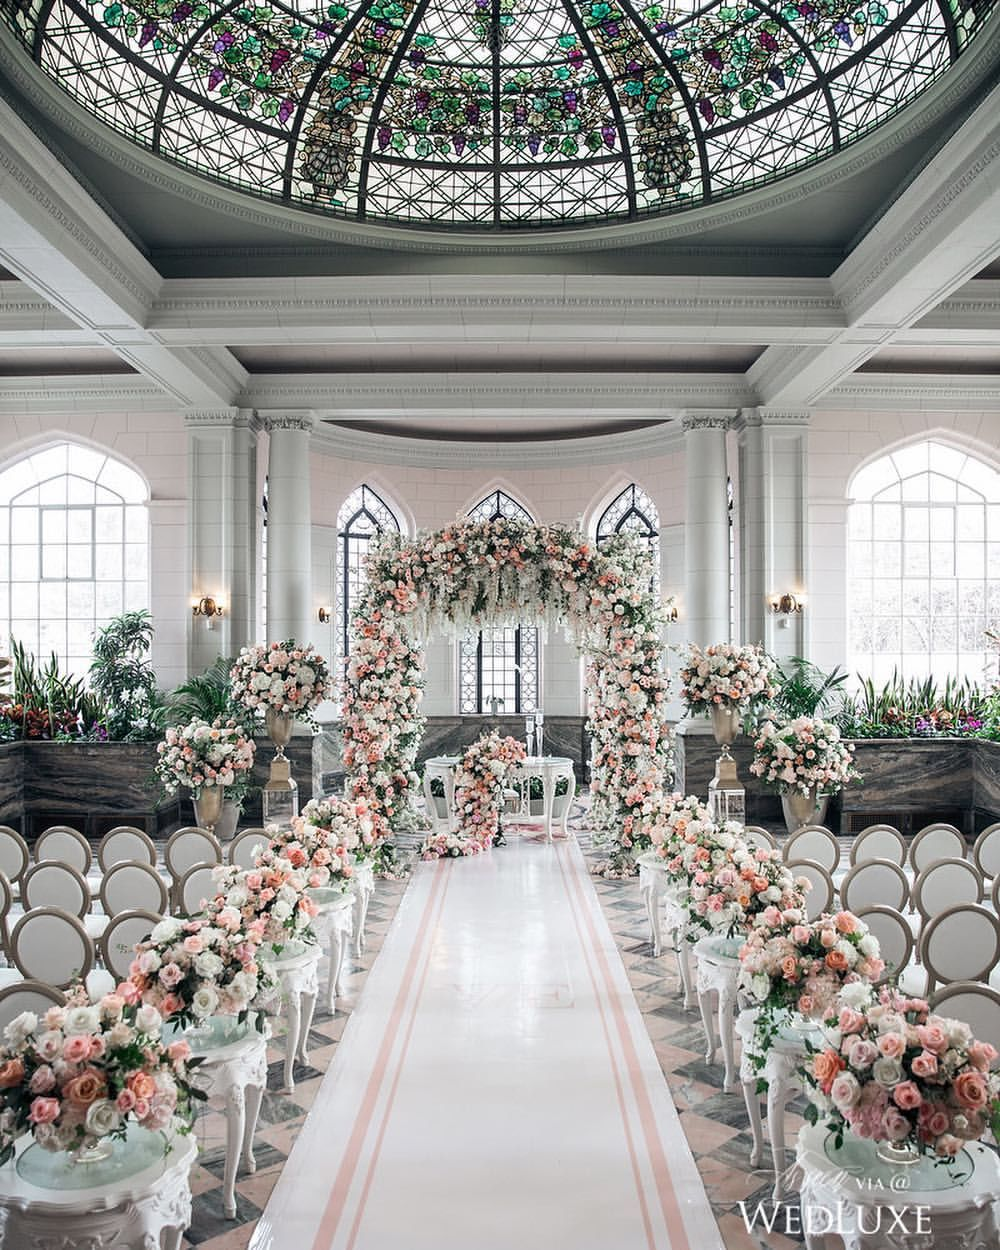 Dreamy floral arch ✔️Stained glass ceiling ✔️Custom aisle runner ✔️Could this wedding be more perfect?